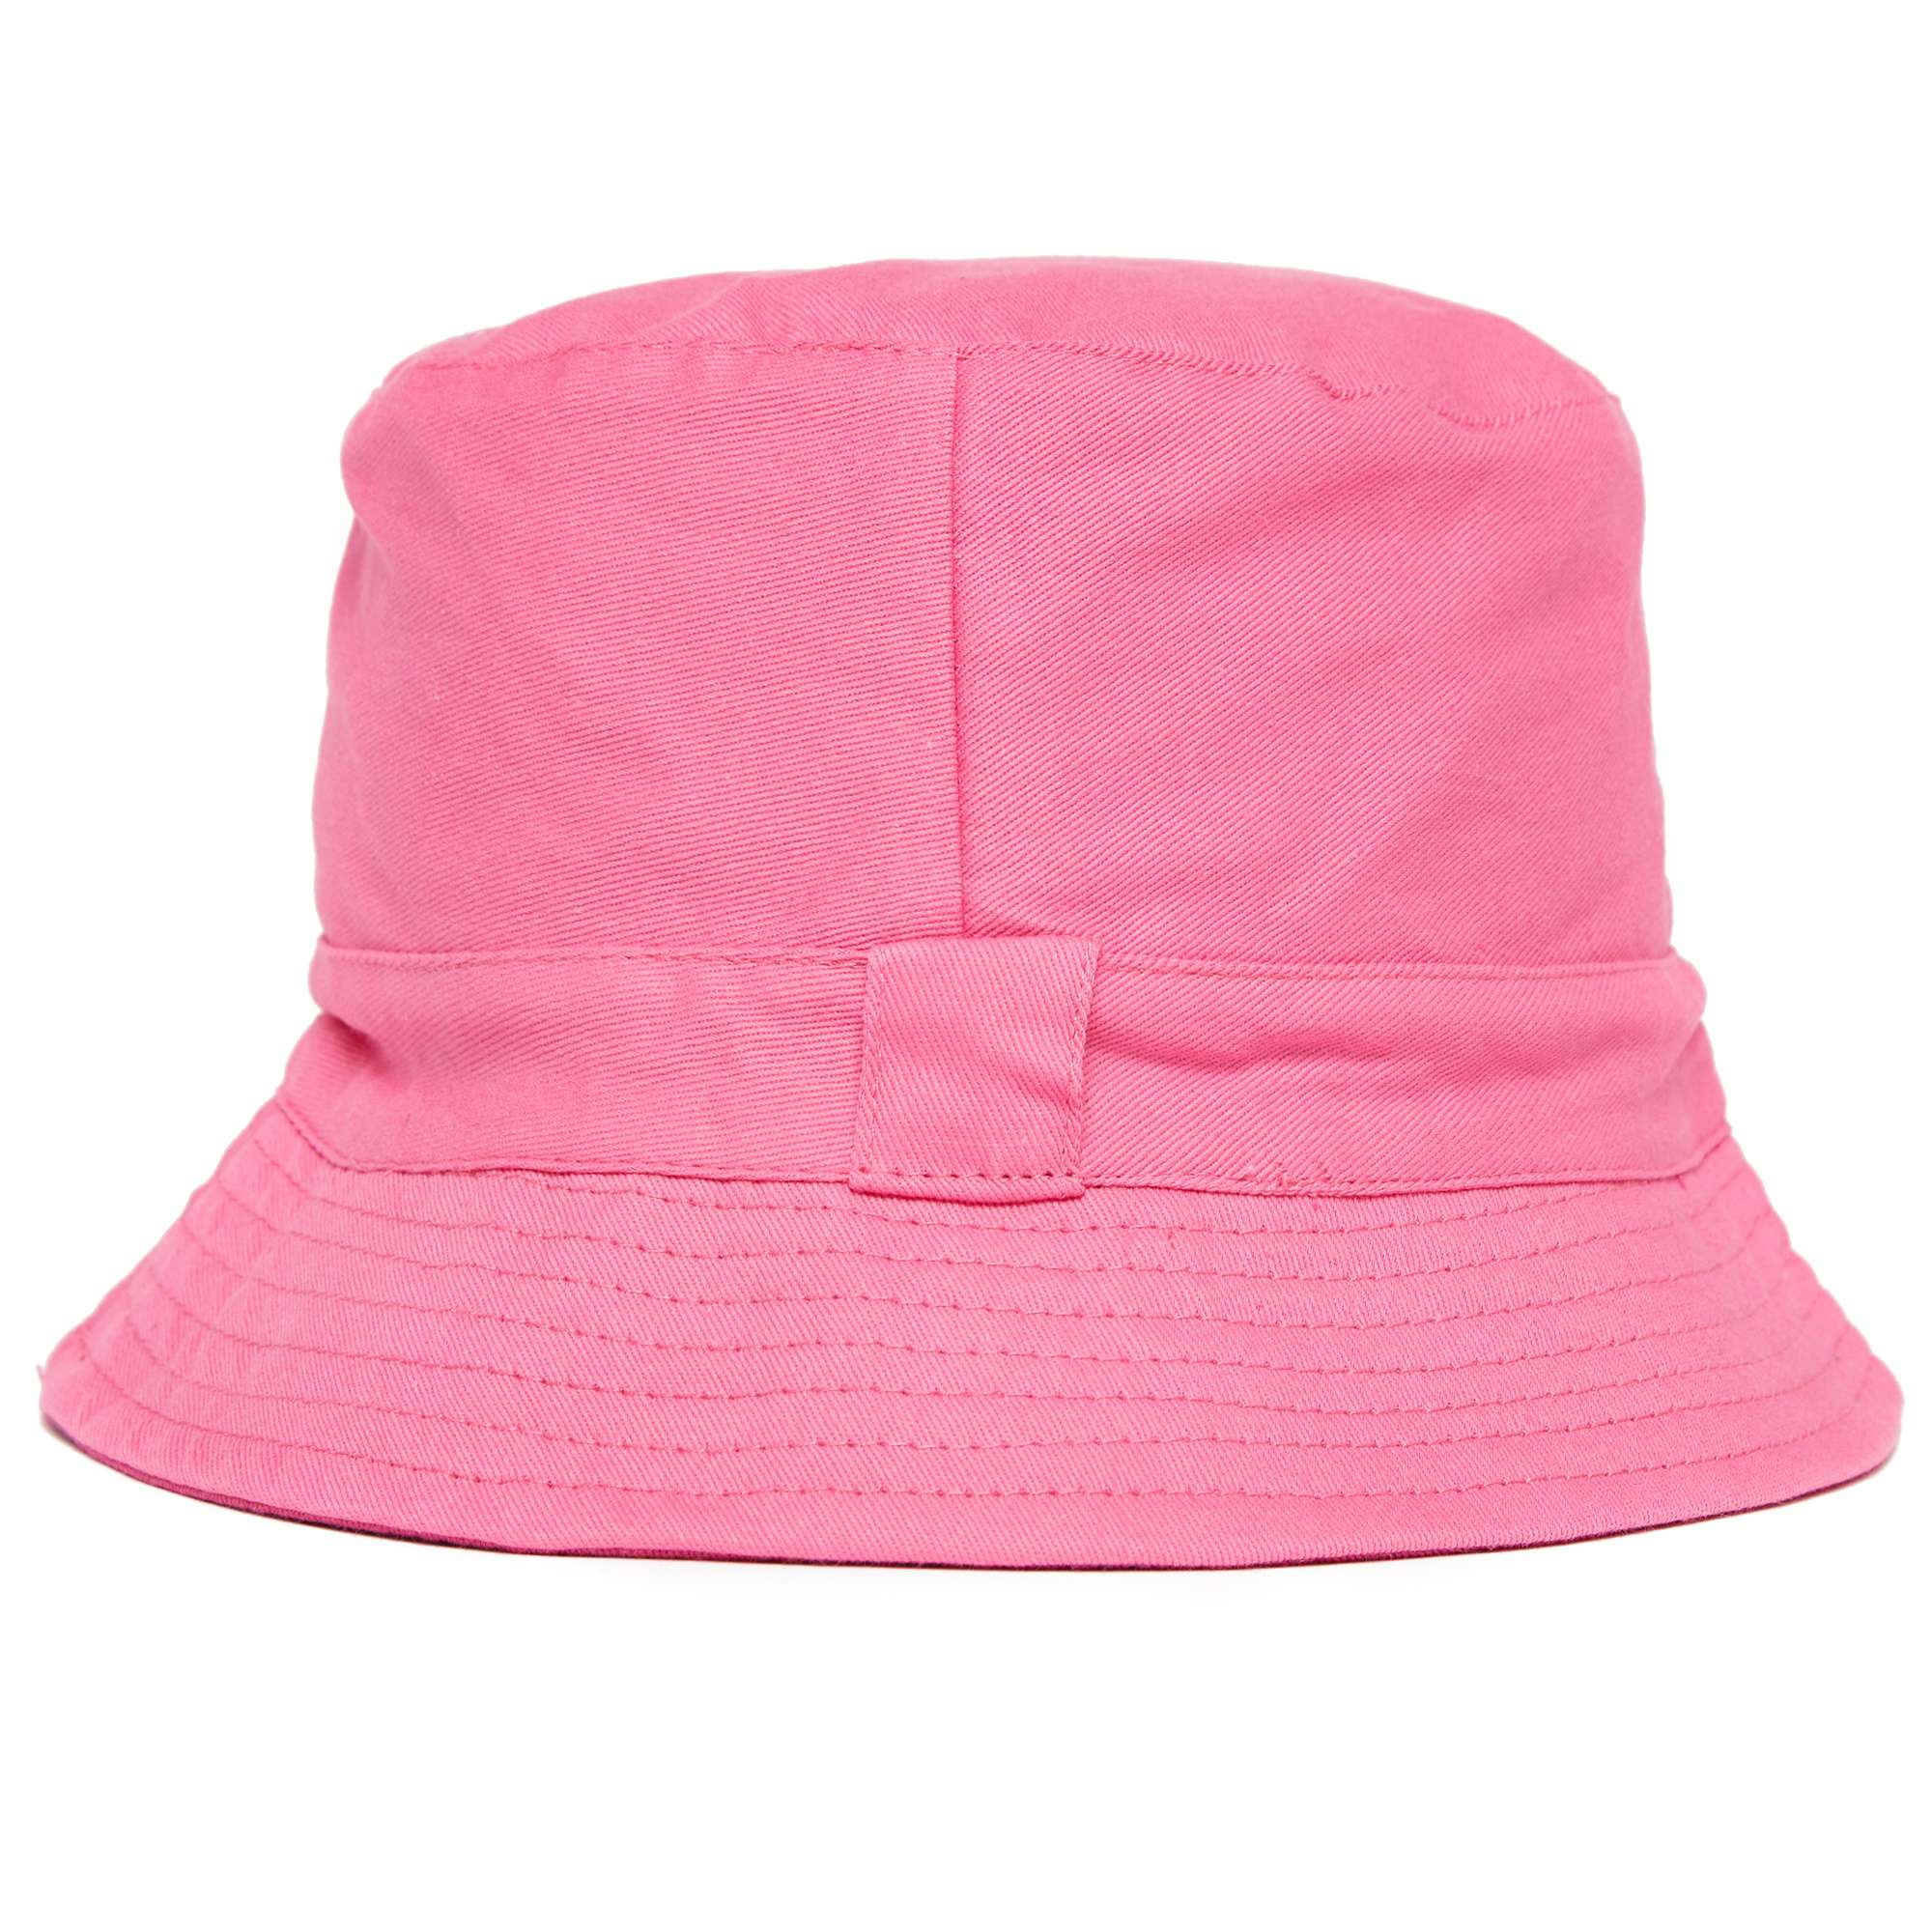 PETER STORM Girls' Reversible Bucket Hat